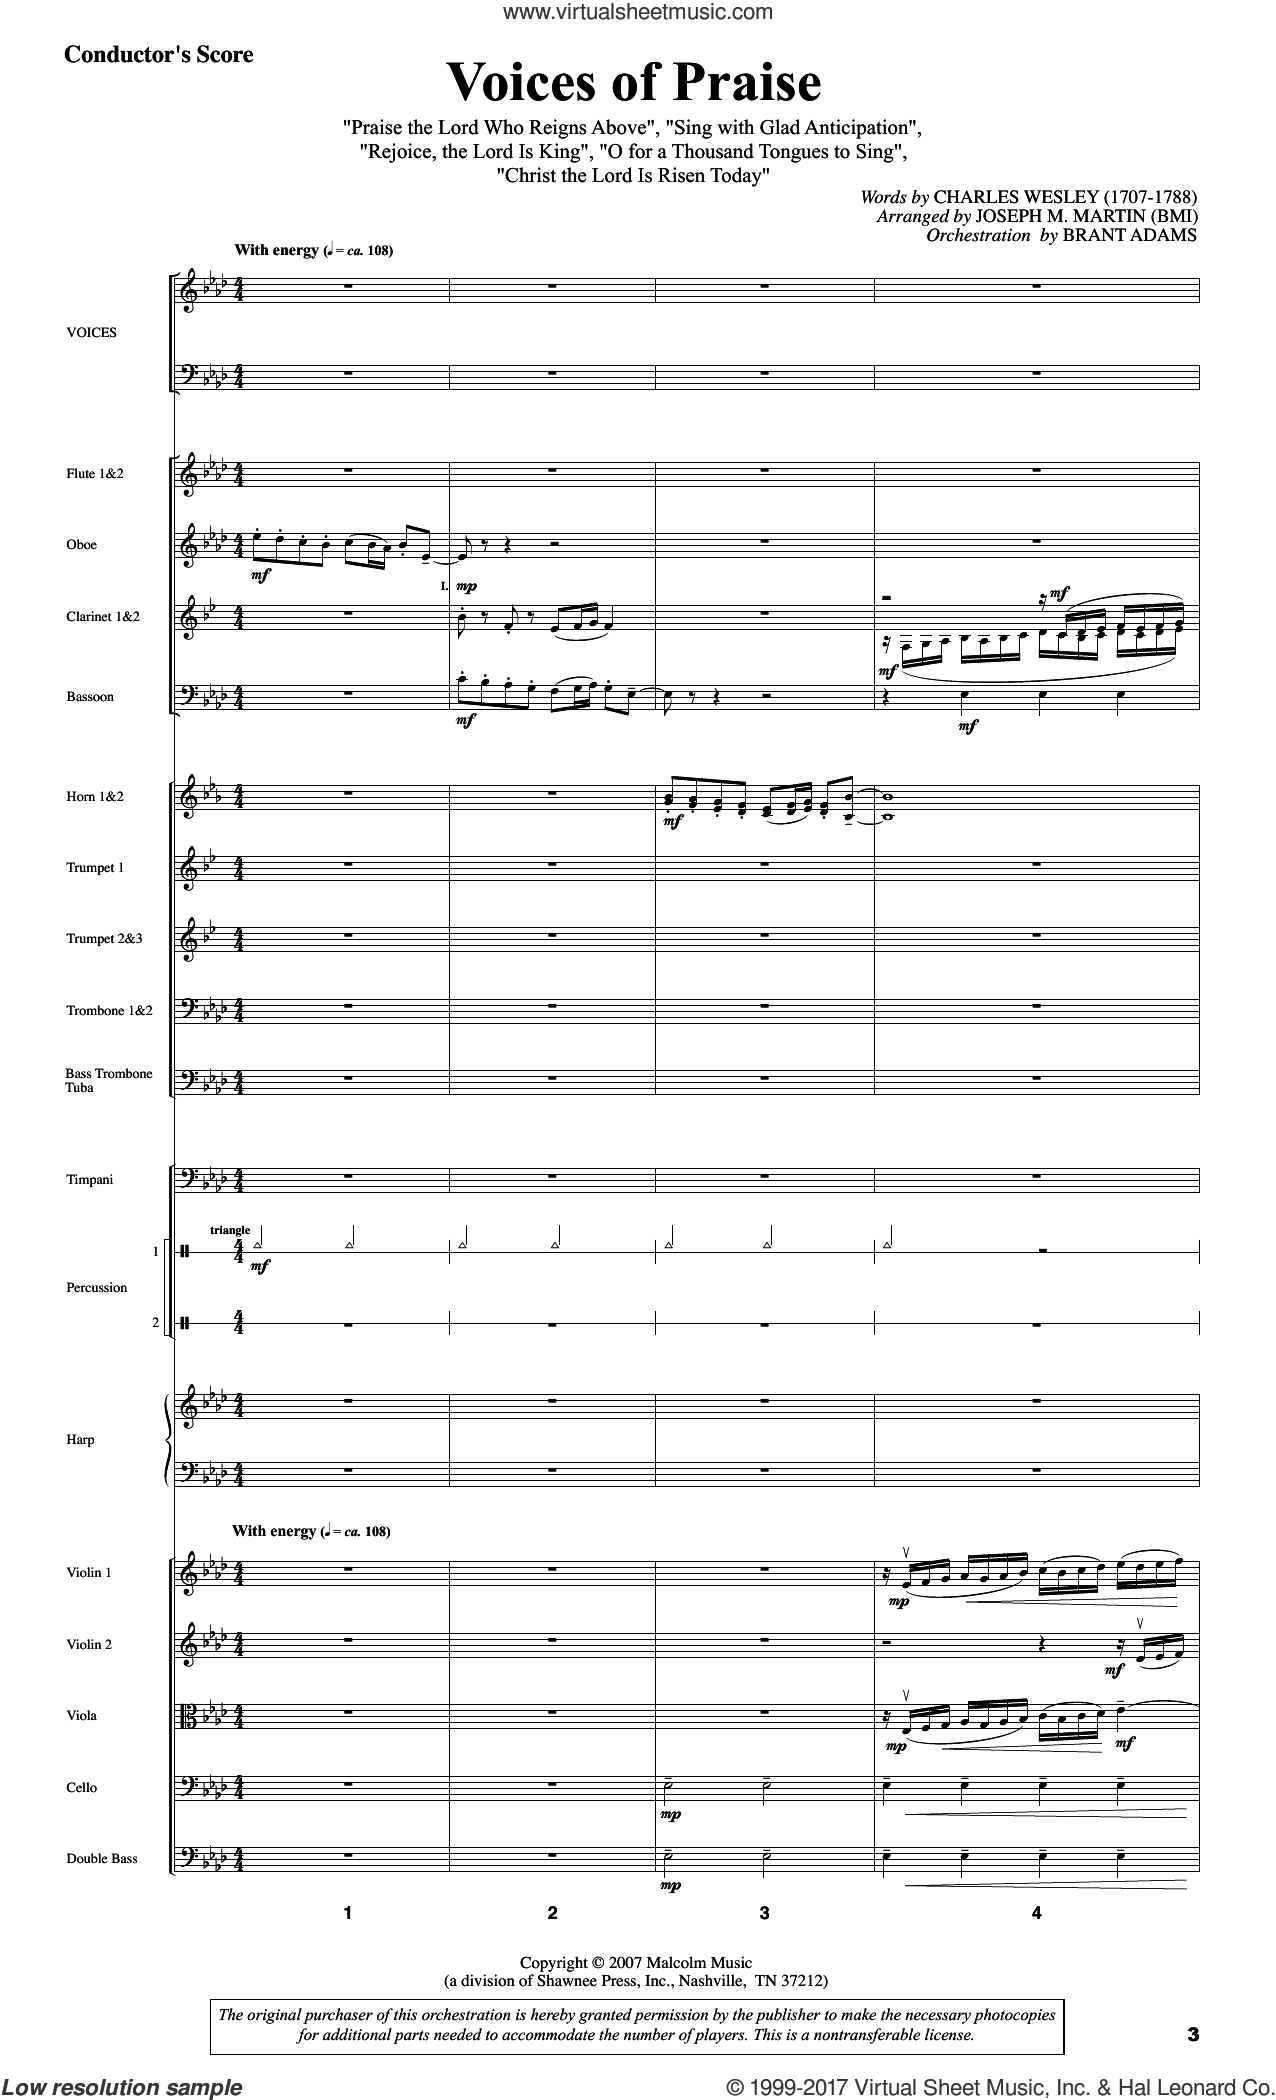 Testament of Praise (A Celebration of Faith) (COMPLETE) sheet music for orchestra/band by Joseph M. Martin, Brant Adams, Charles Wesley and Gaelic Tune, intermediate skill level